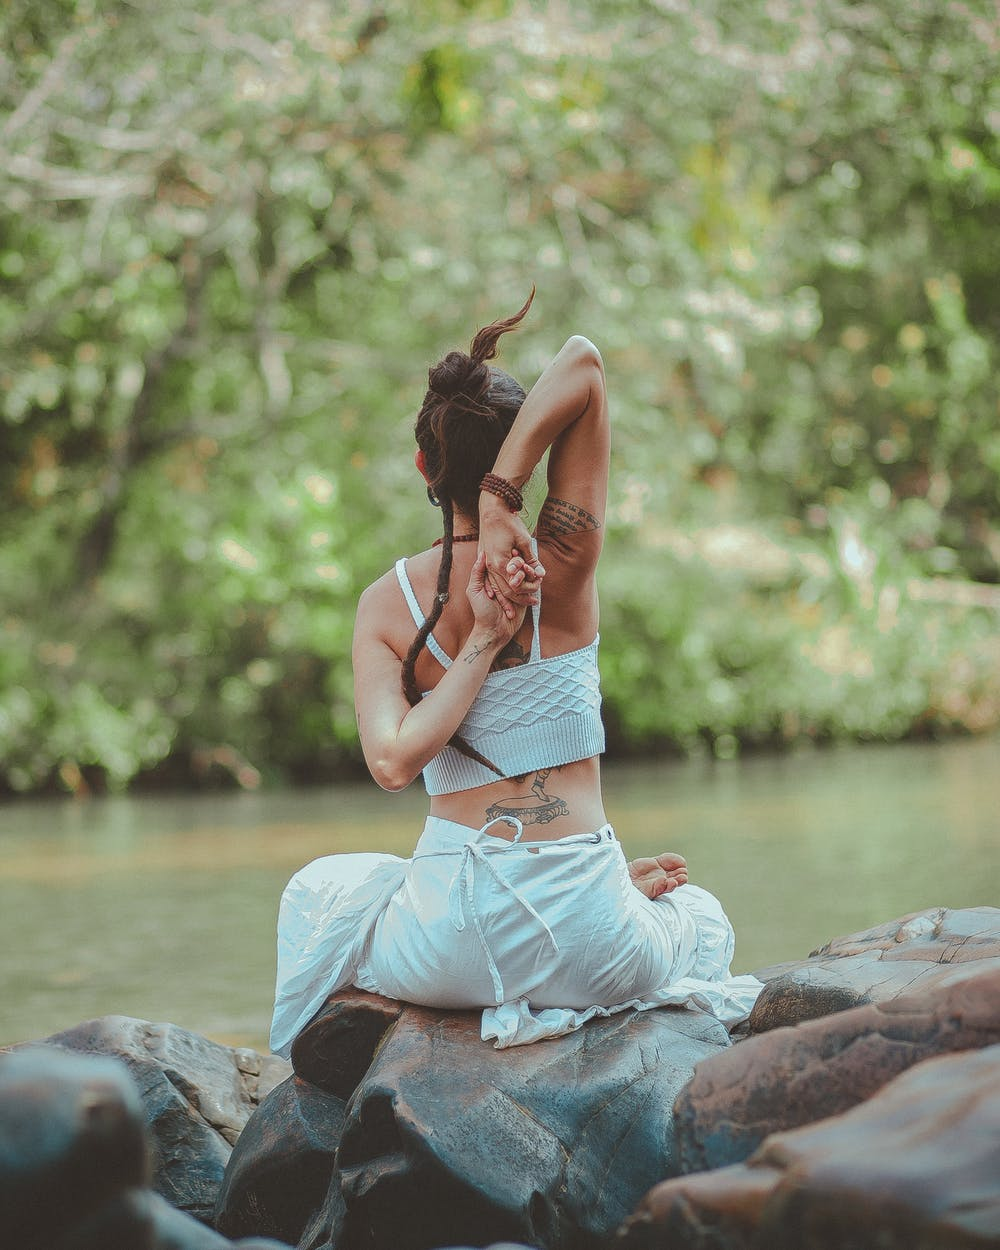 I'm for you if - You have a desire to connect with your most authentic selfYou need support with overcoming mental health challenges such as anxiety or depressionYou are interested in mind, body and spiritual healing